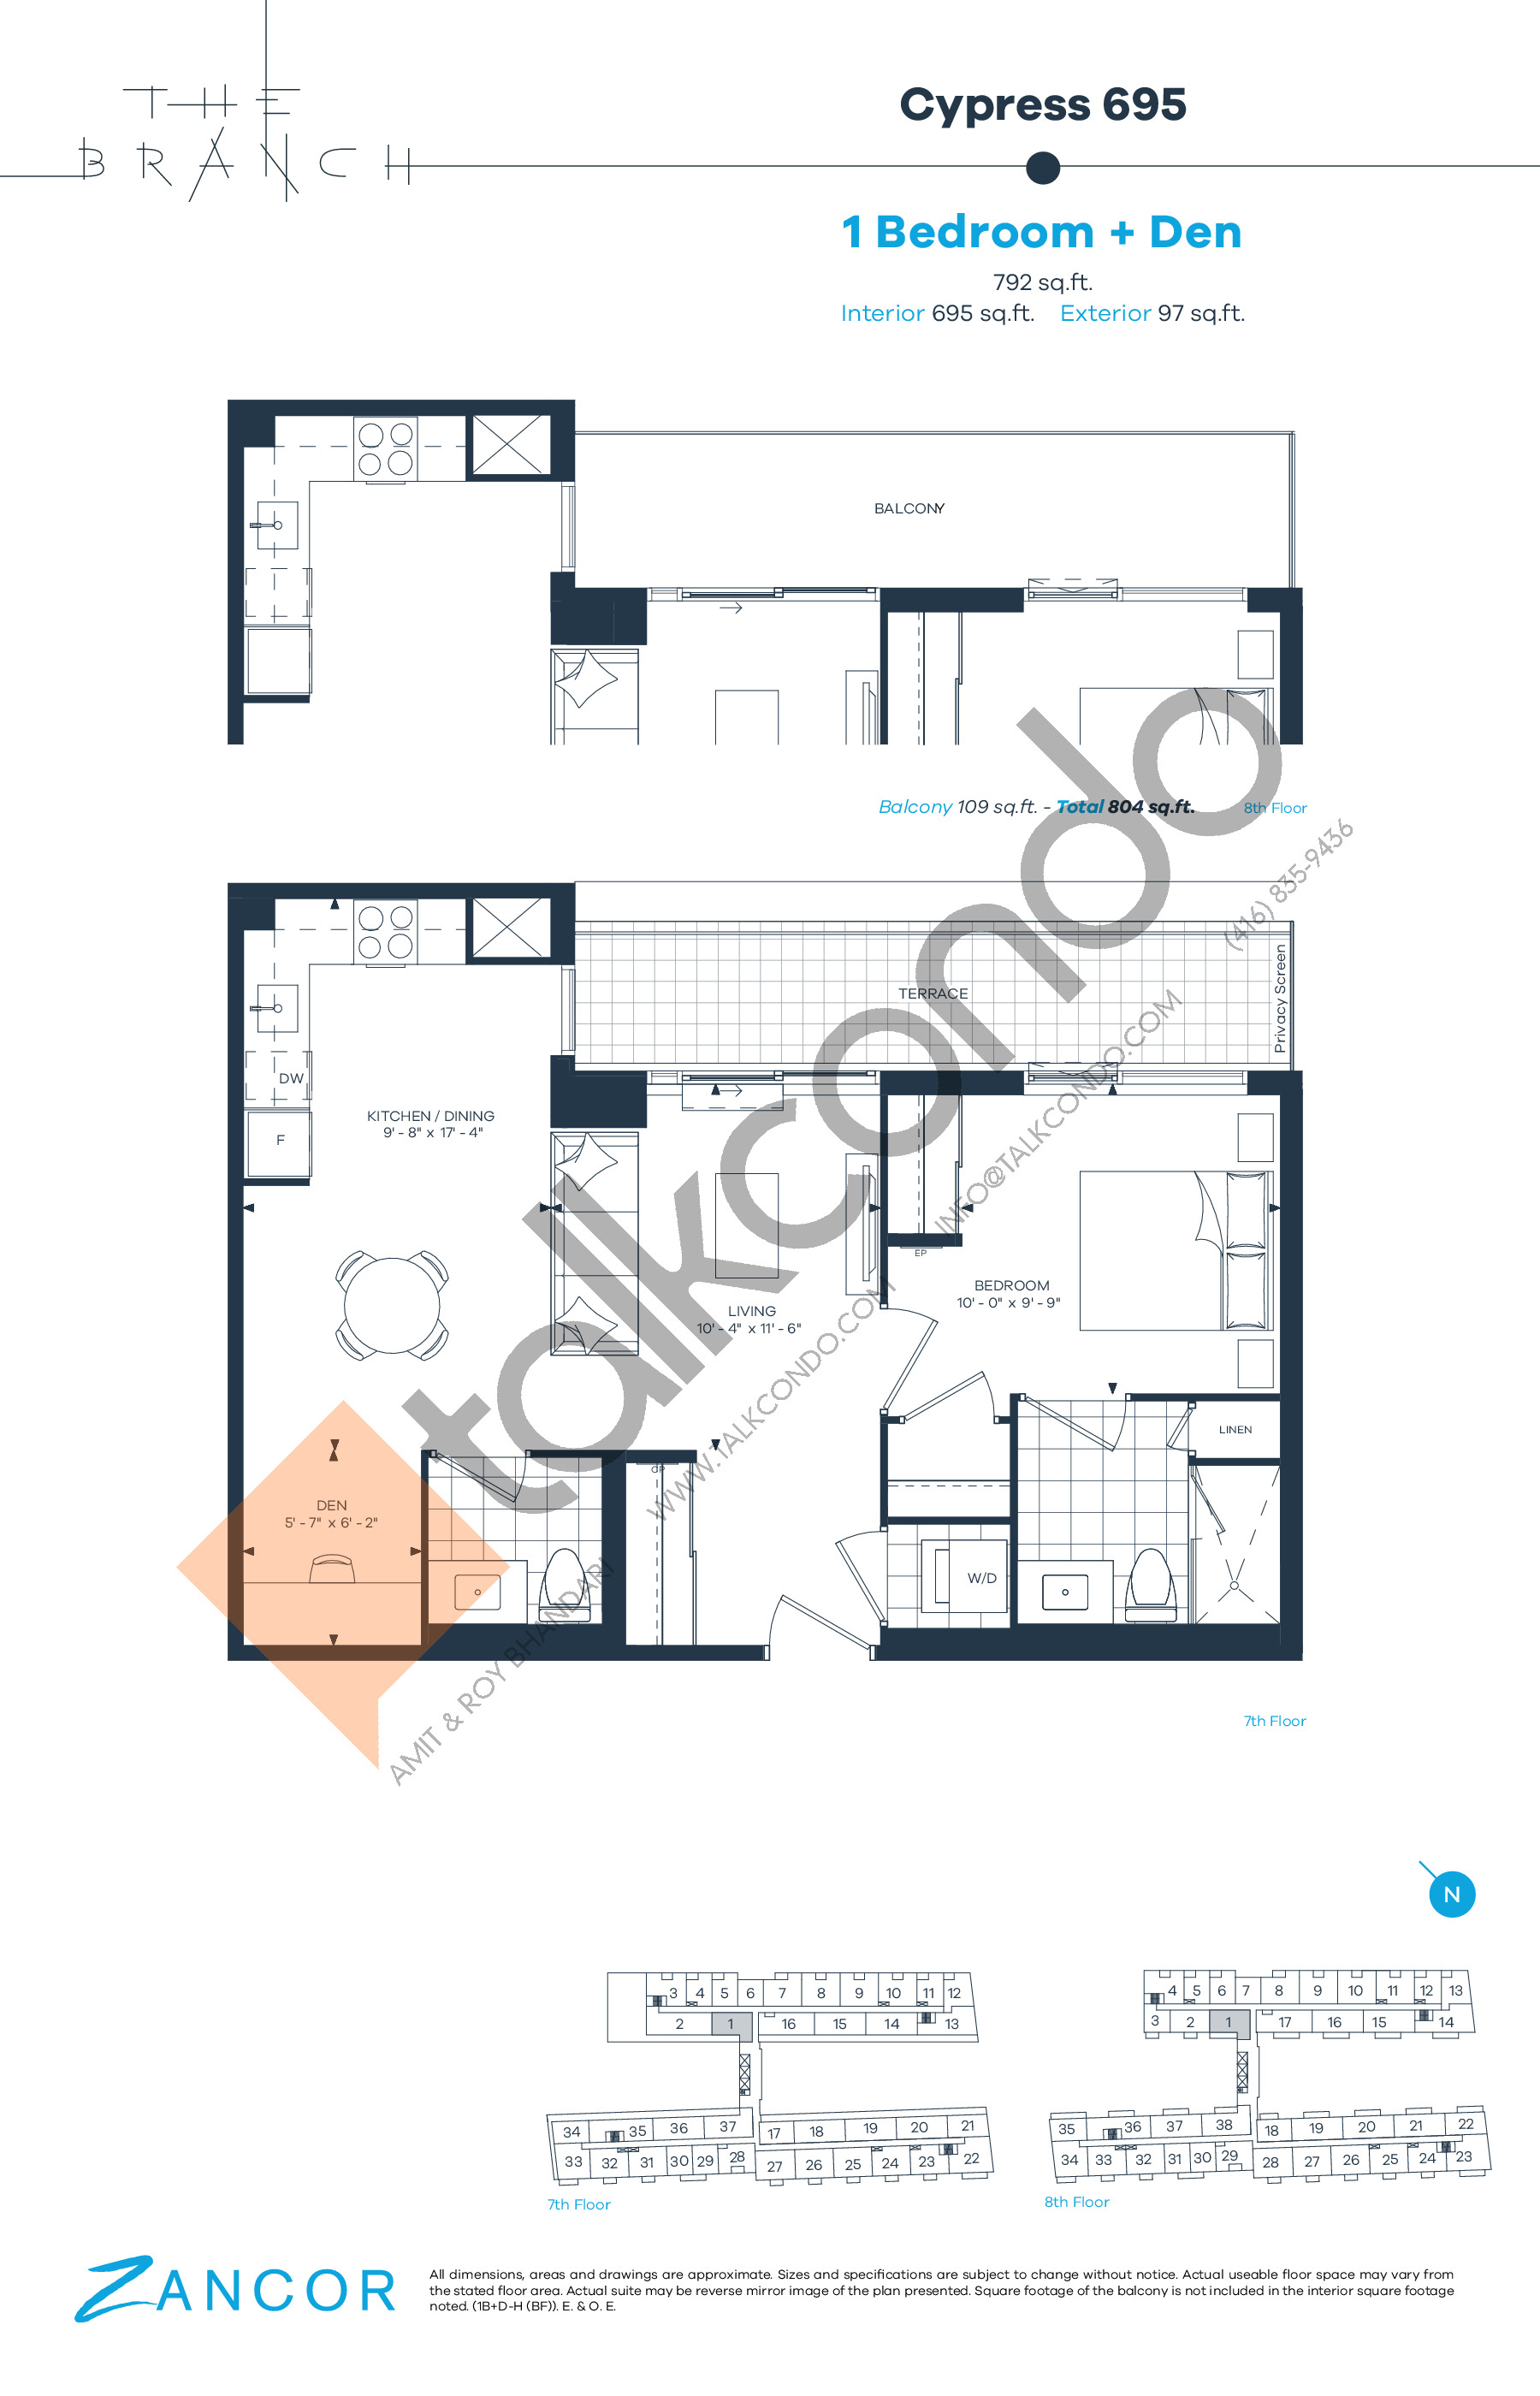 Cypress 695 Floor Plan at The Branch Condos - 695 sq.ft